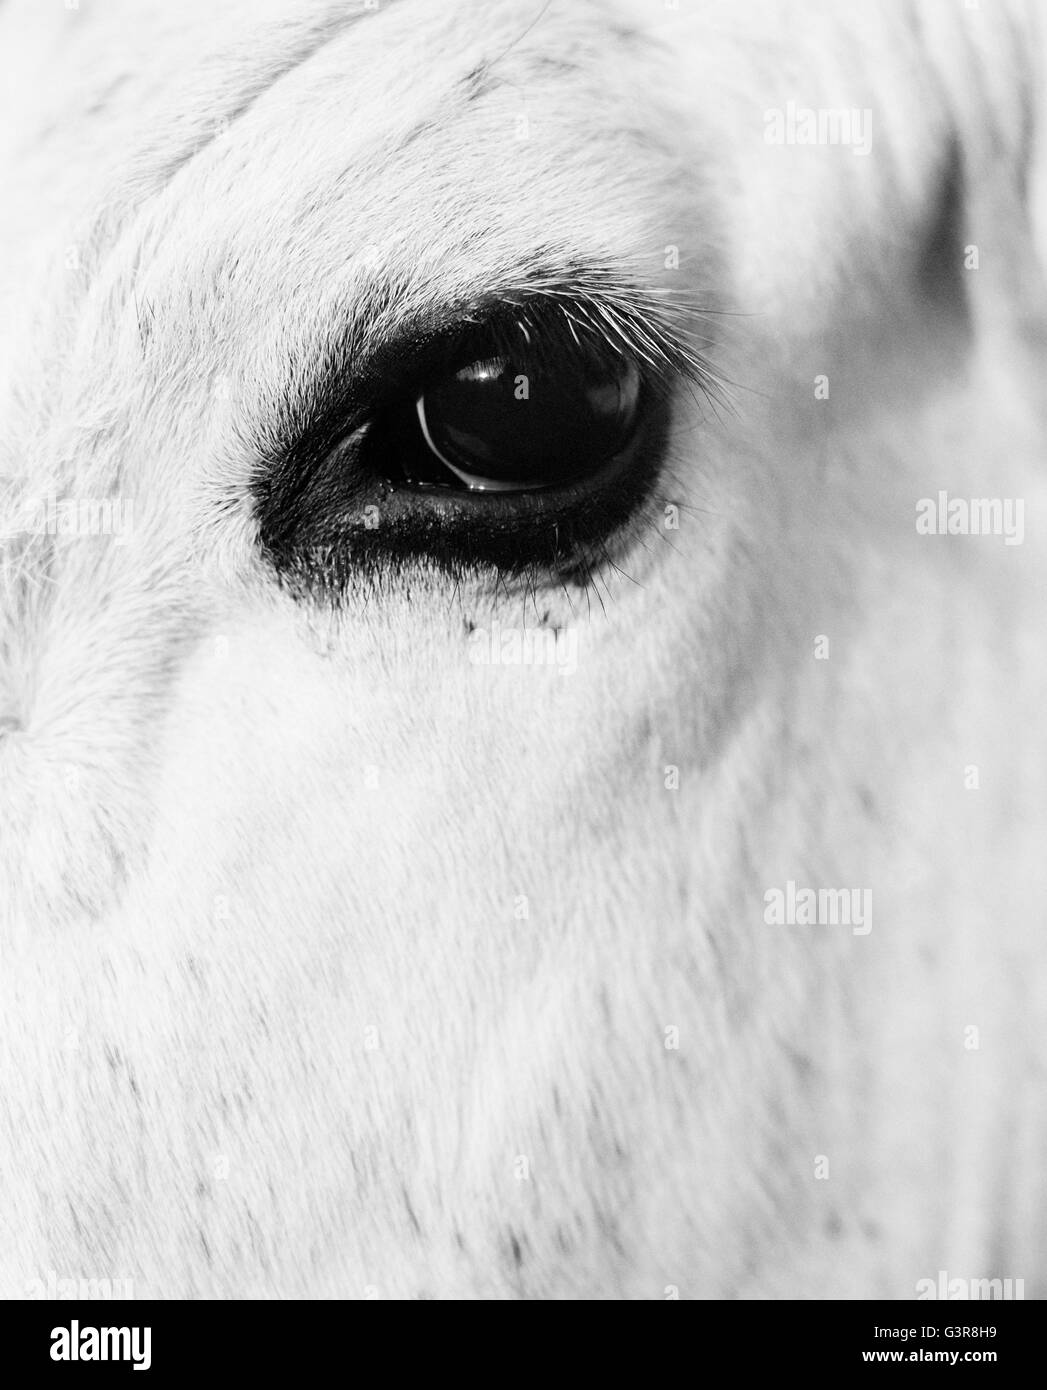 Sweden, Dalarna, Furudal, Aterasen, Close-up view of animal eye - Stock Image